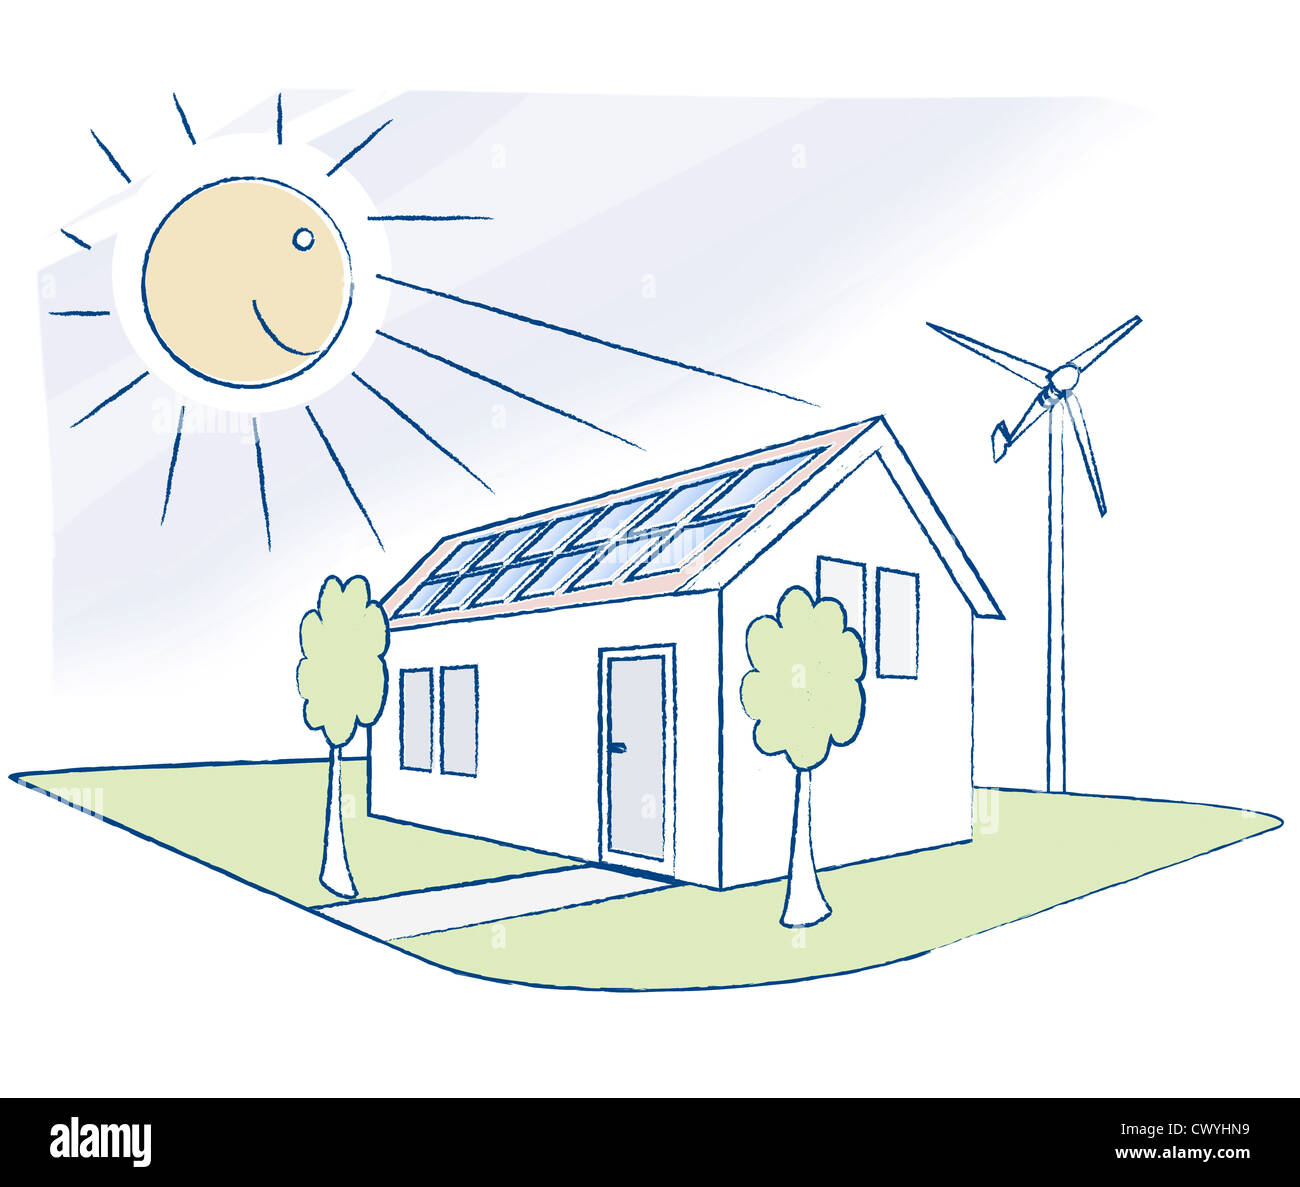 House with solar panels, illustration - Stock Image